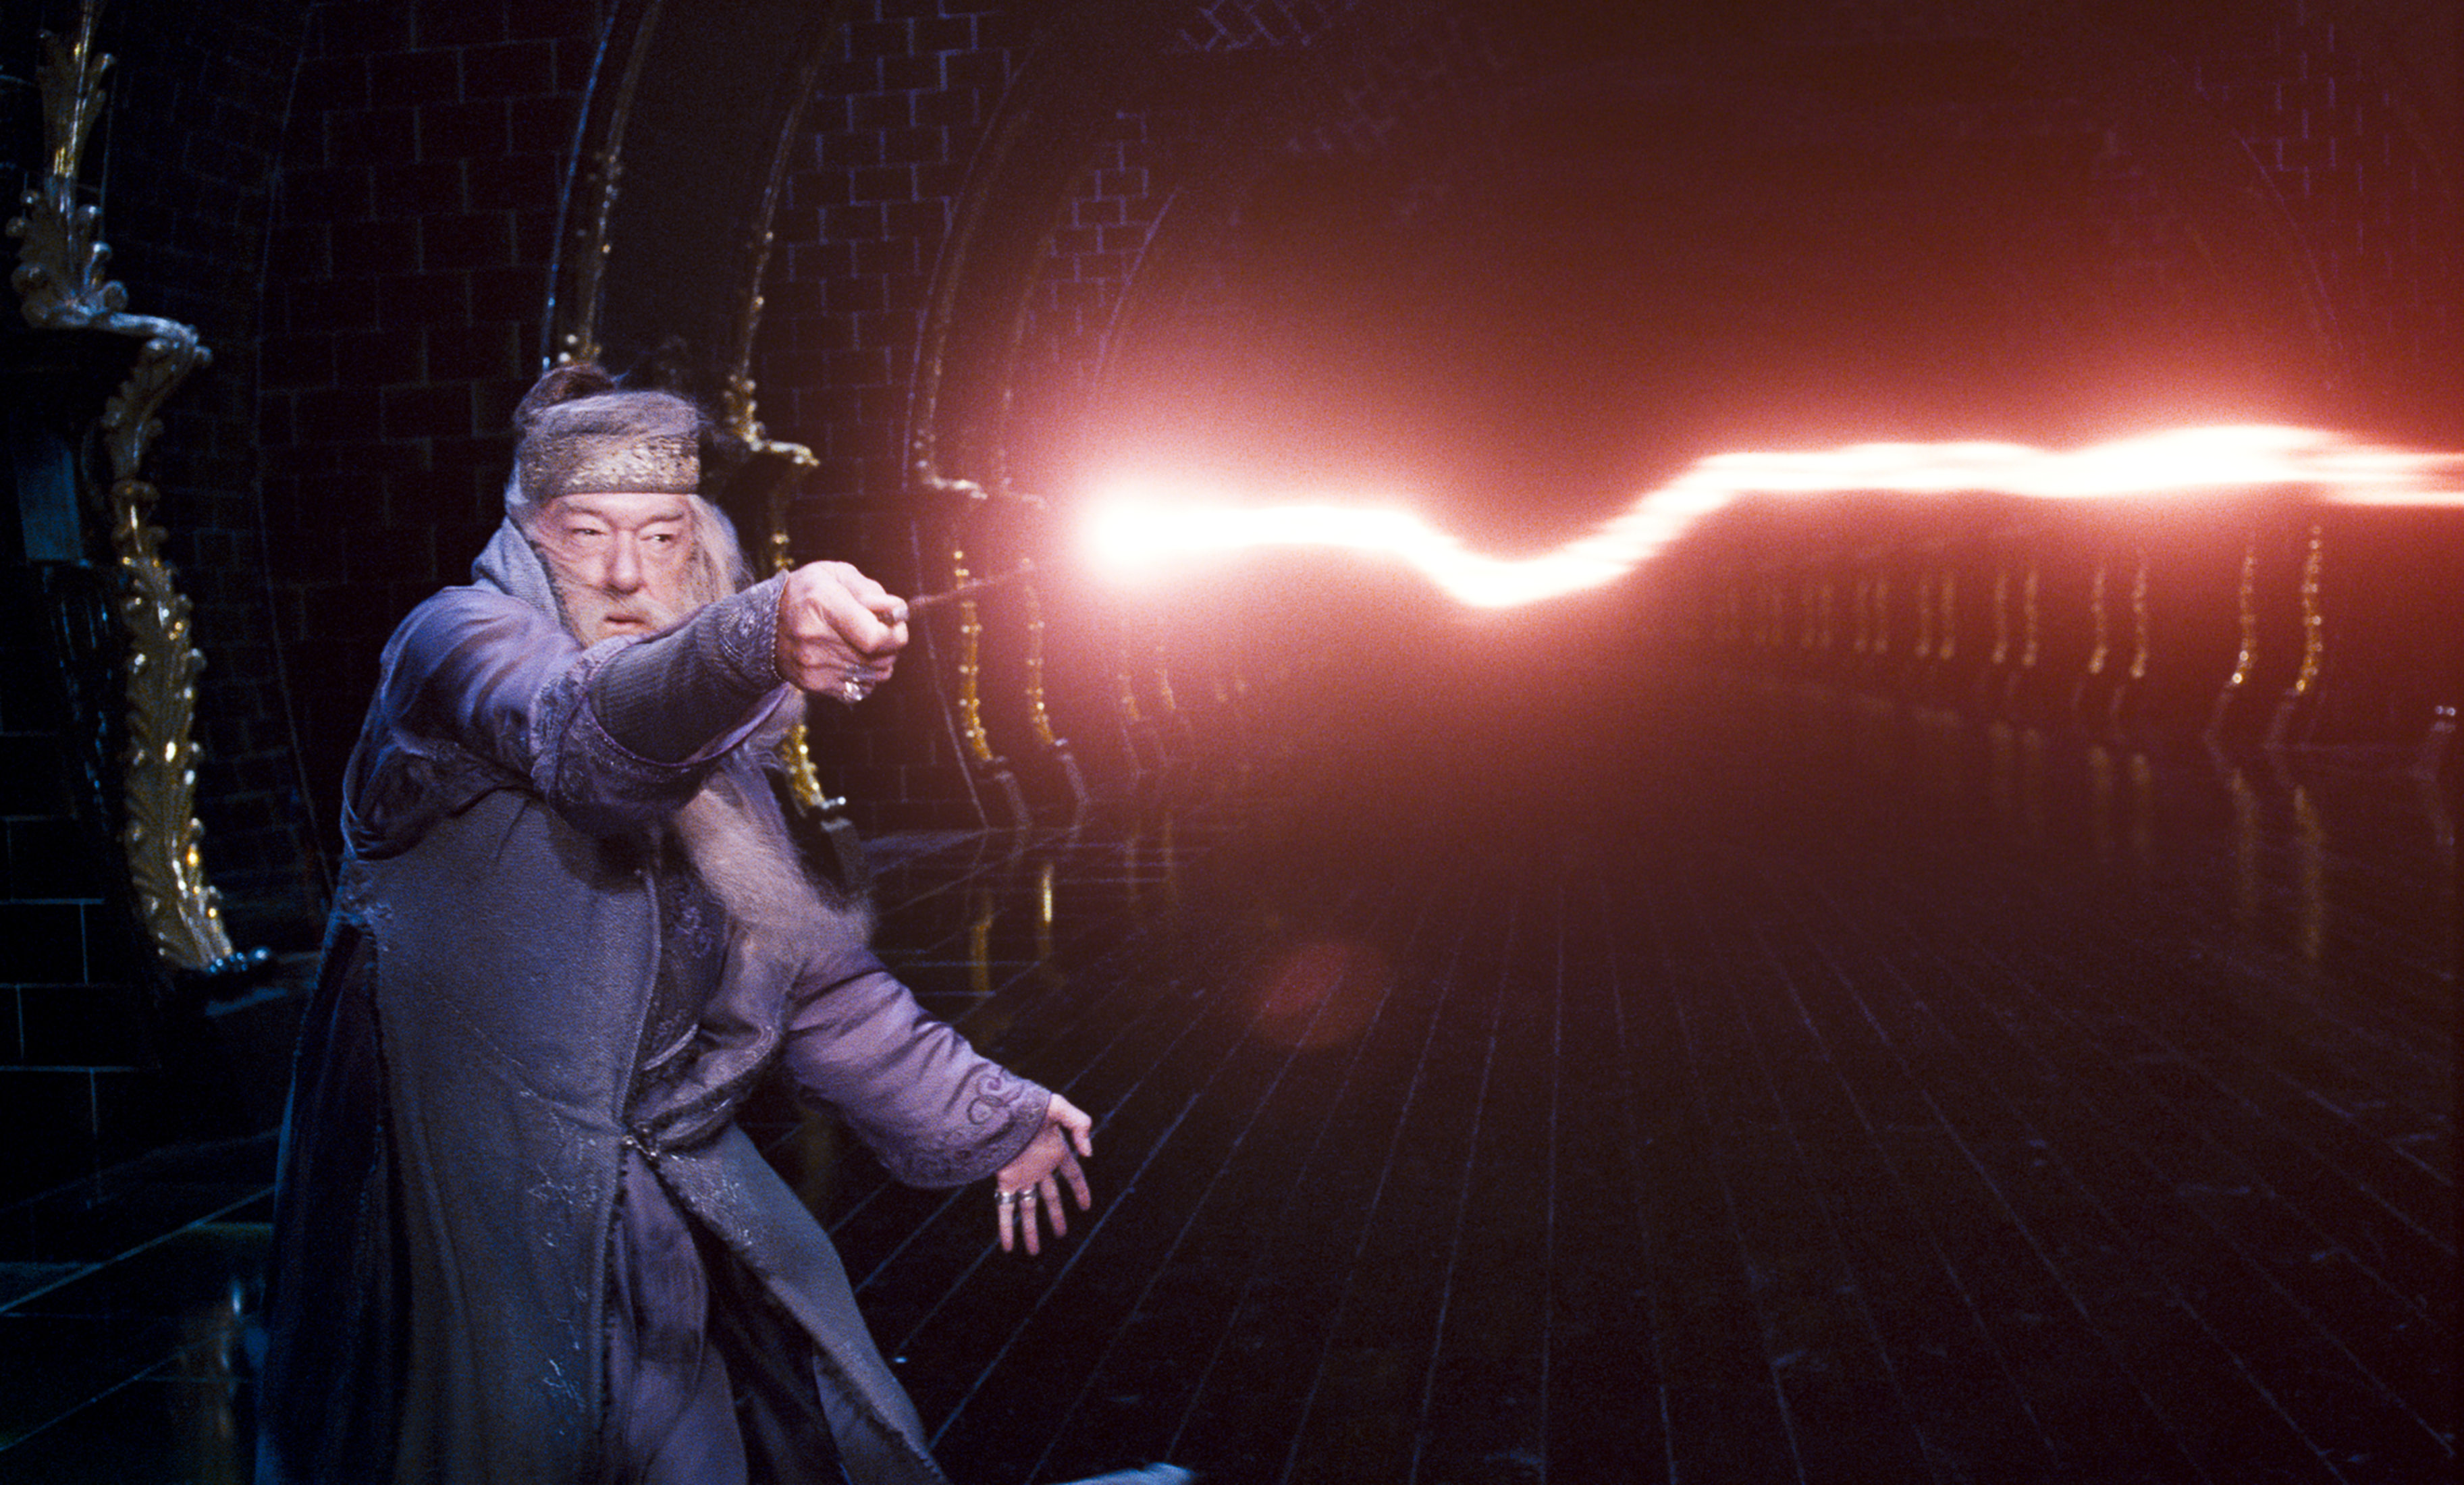 Spells all muggles wish existed in real life pottermore for Light up elder wand